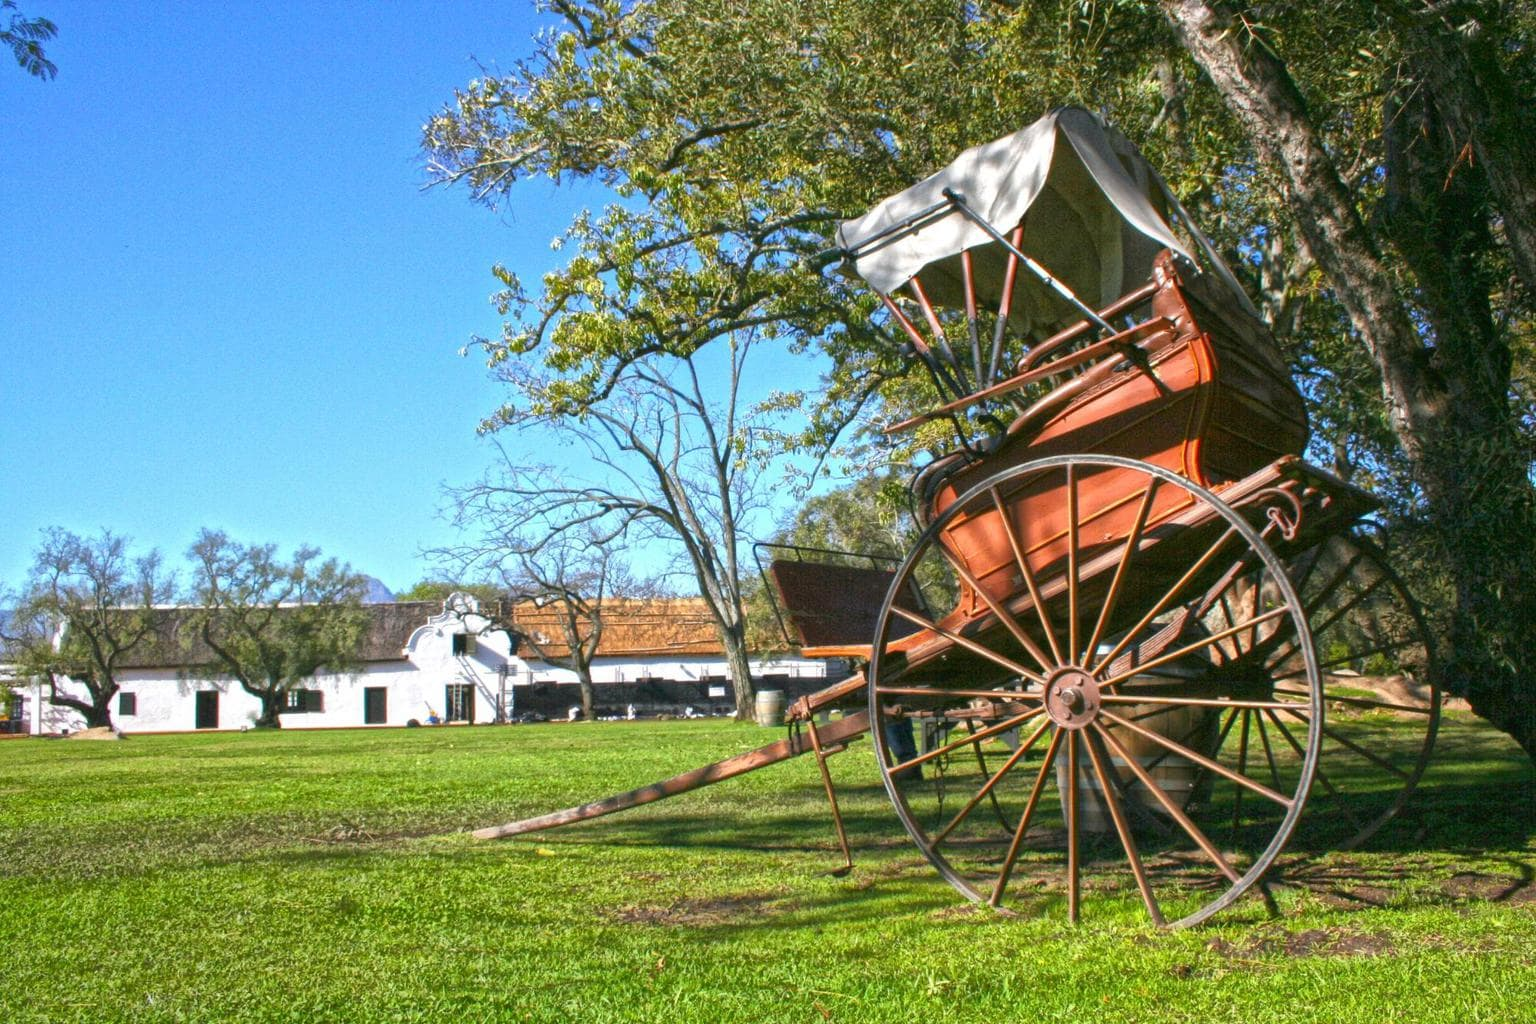 Old cart at the Spier grounds